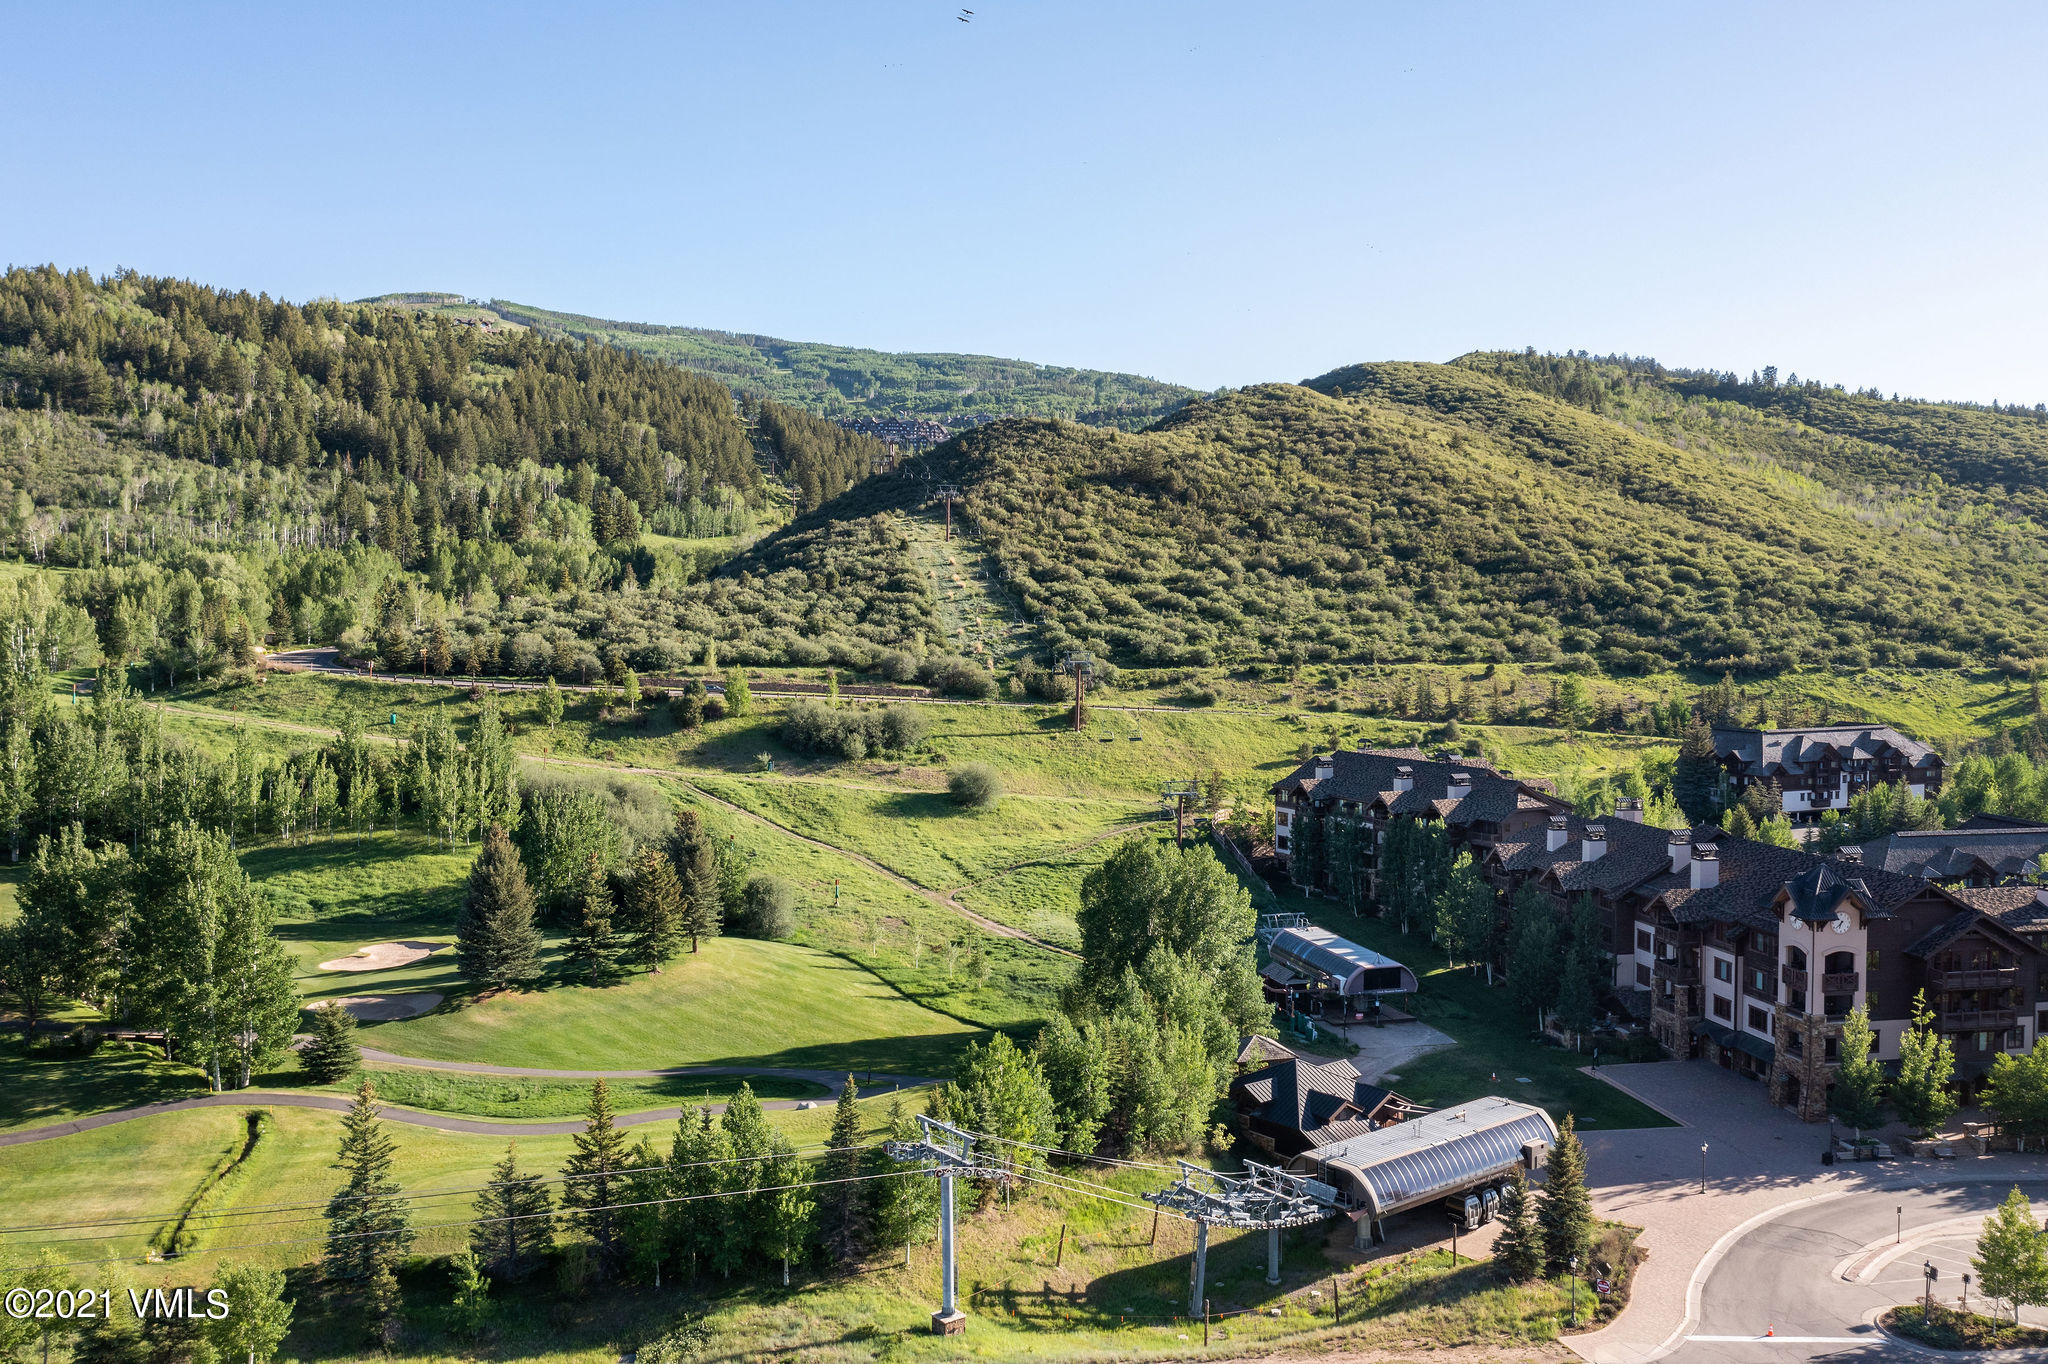 Rare ski-in slope-side Penthouse and ready to move in. This residence is fully furnished with on site management, outdoor pool, workout facility and underground parking. Enjoy the convenience of ski-in ski-out in Beaver Creek with Chair 15 just steps away. High rental potential already in place.